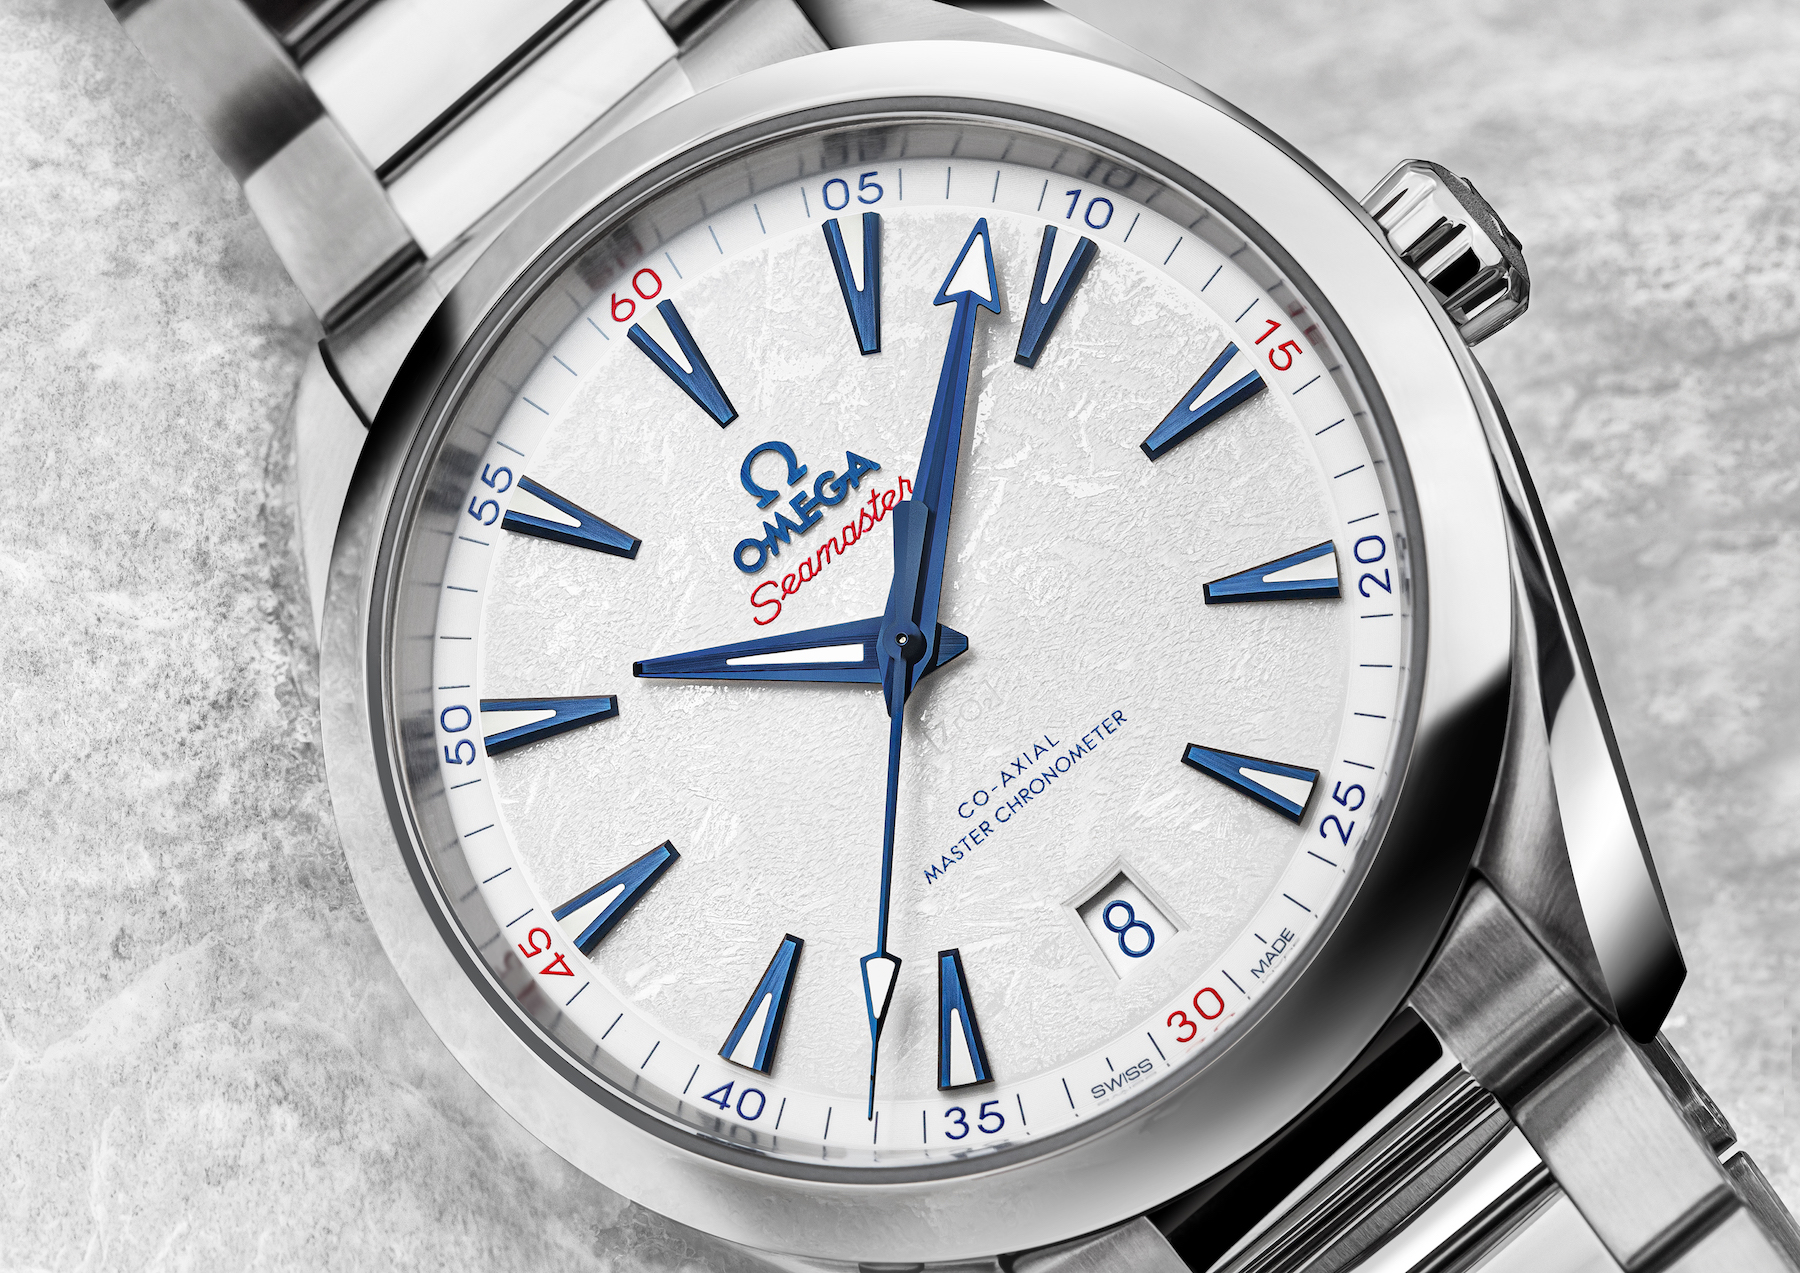 Omega Launches An All-New Seamaster Aqua Terra Beijing 2022 In Celebration Of The Upcoming Olympic Winter Games